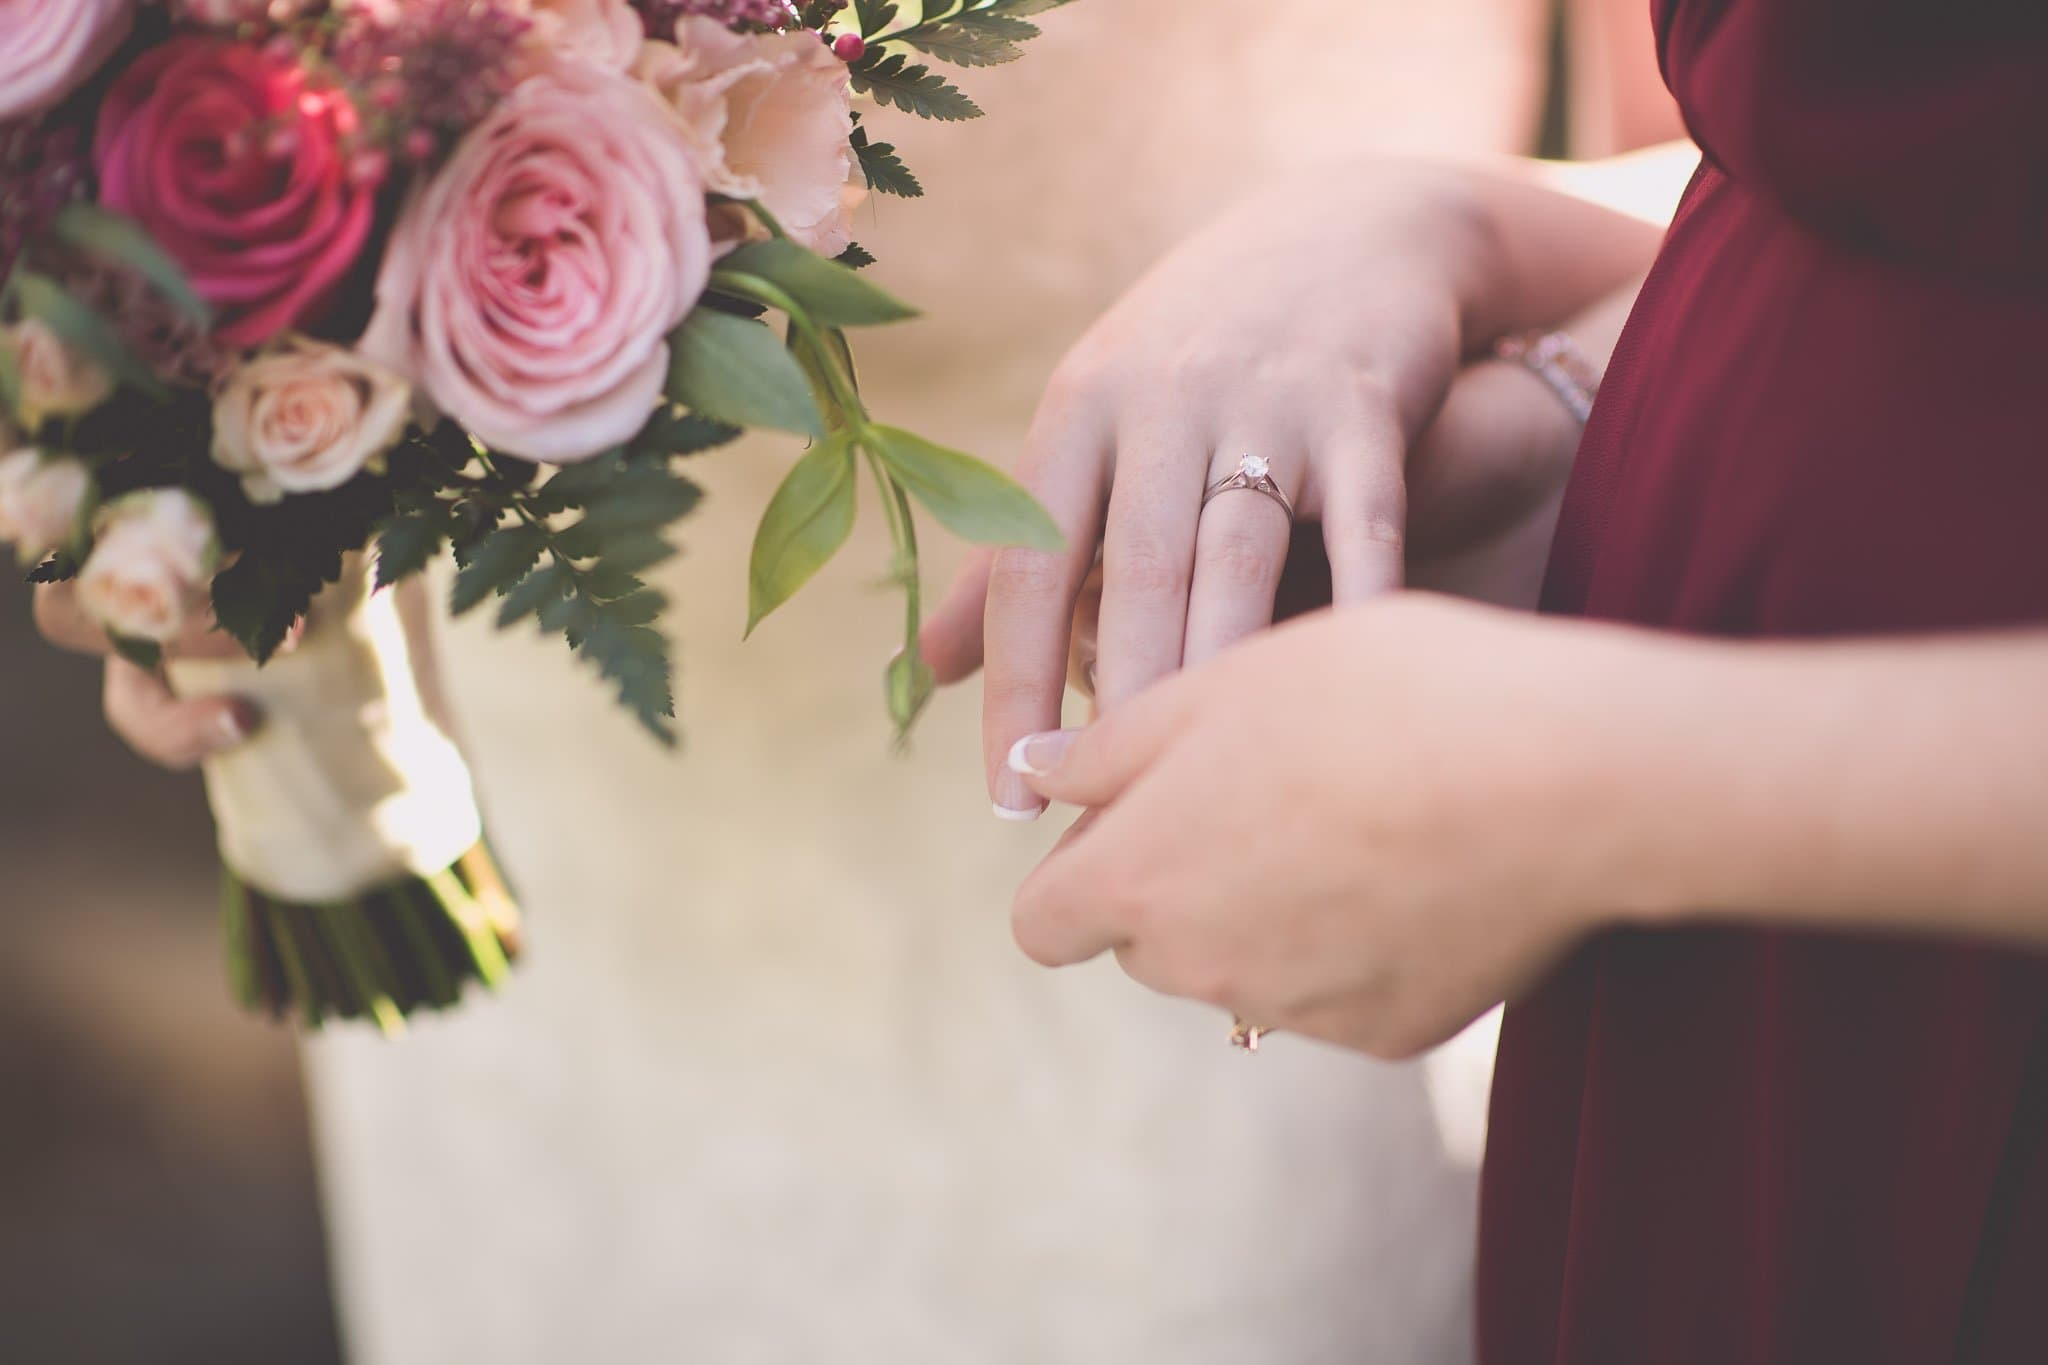 Melbourne wedding photography of the engagement ring on the bride's hand